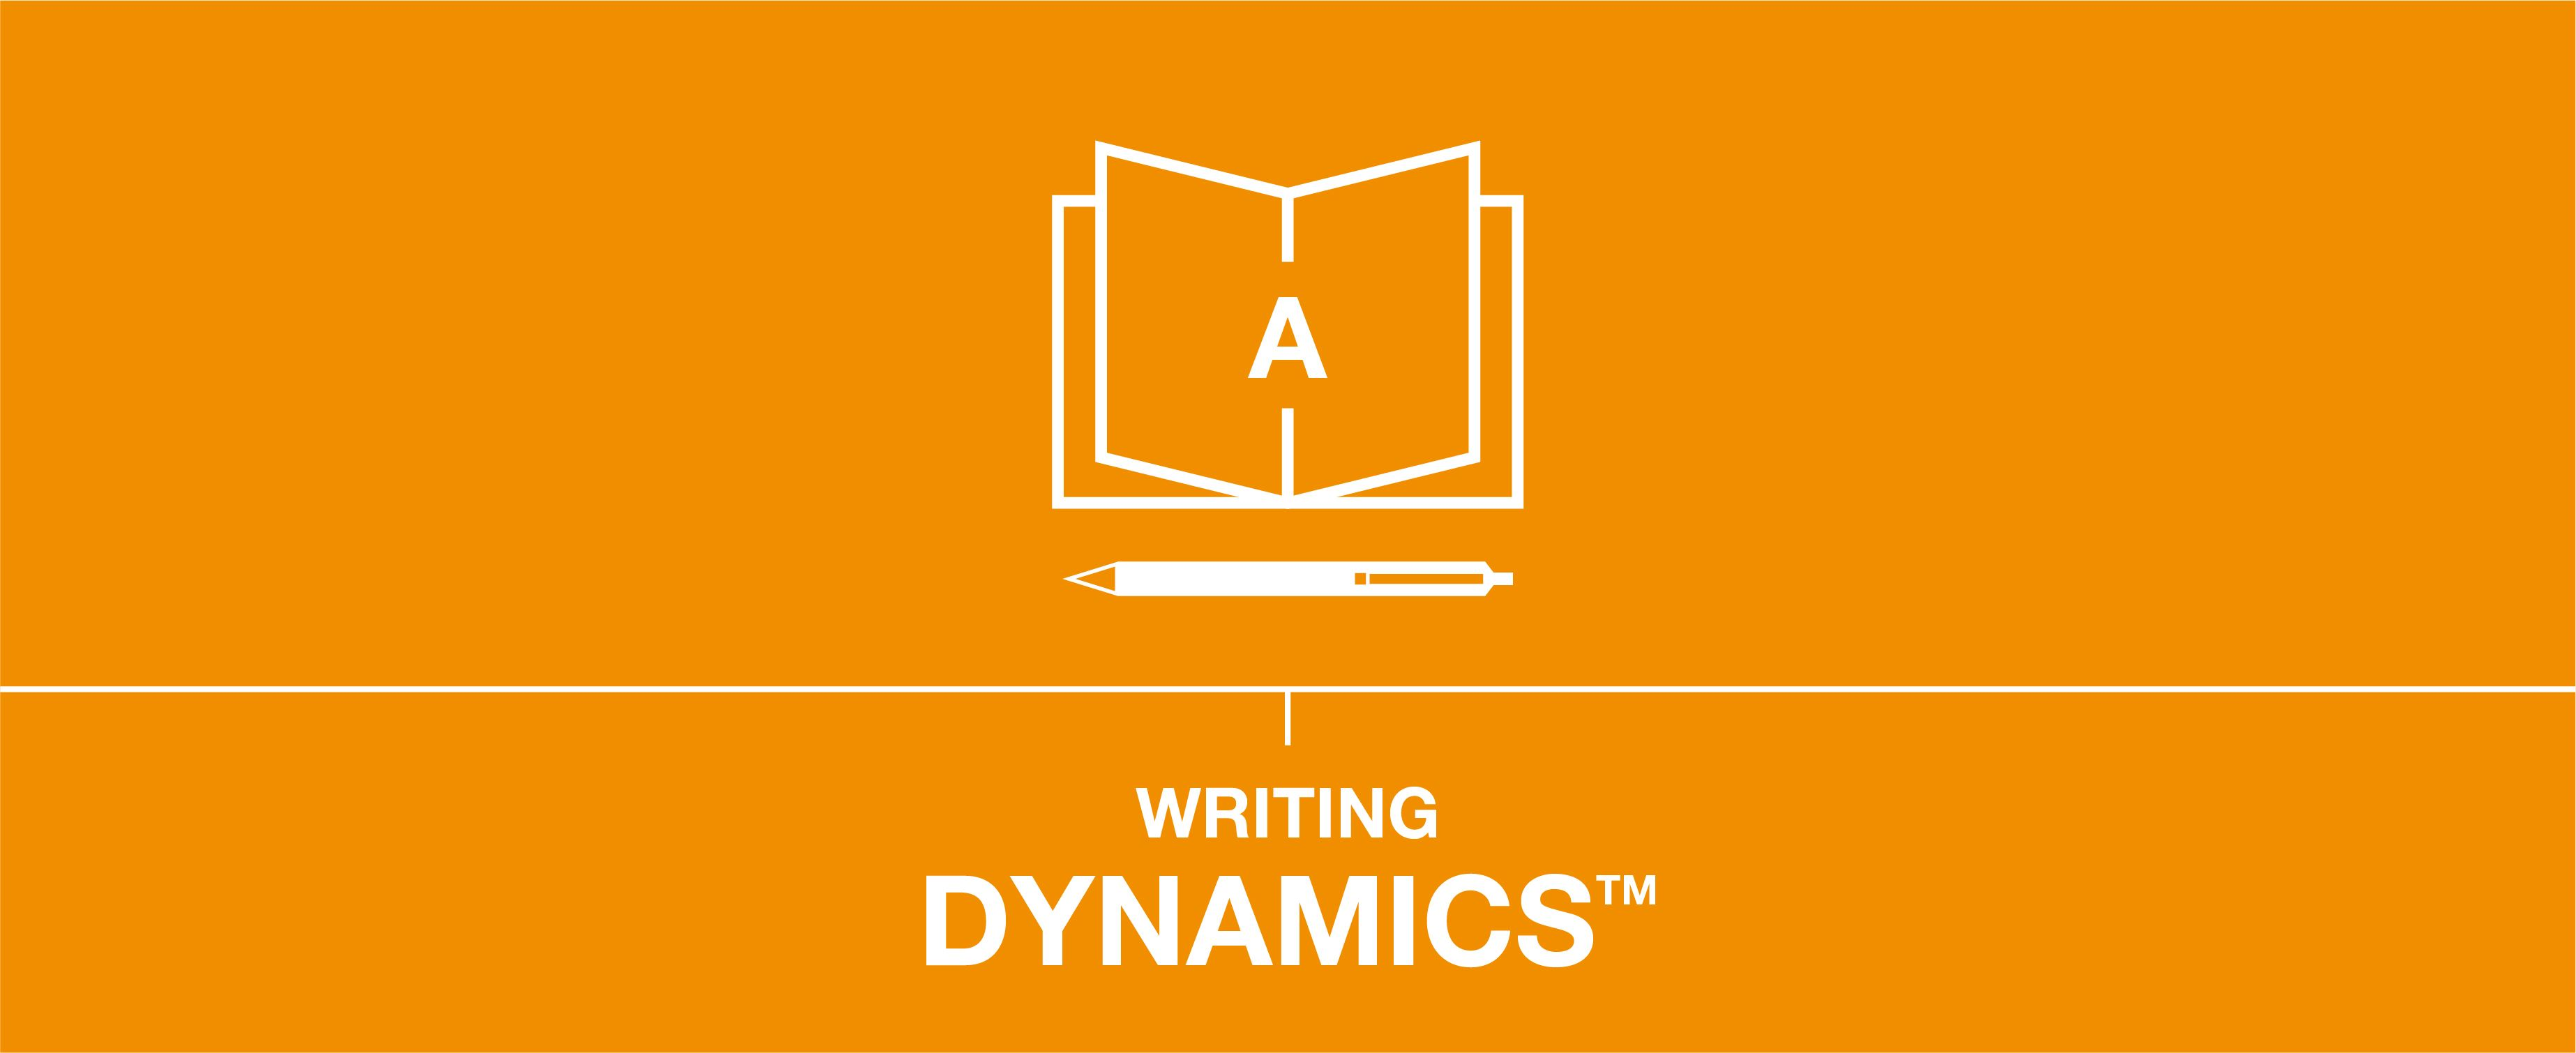 Writing Dynamics